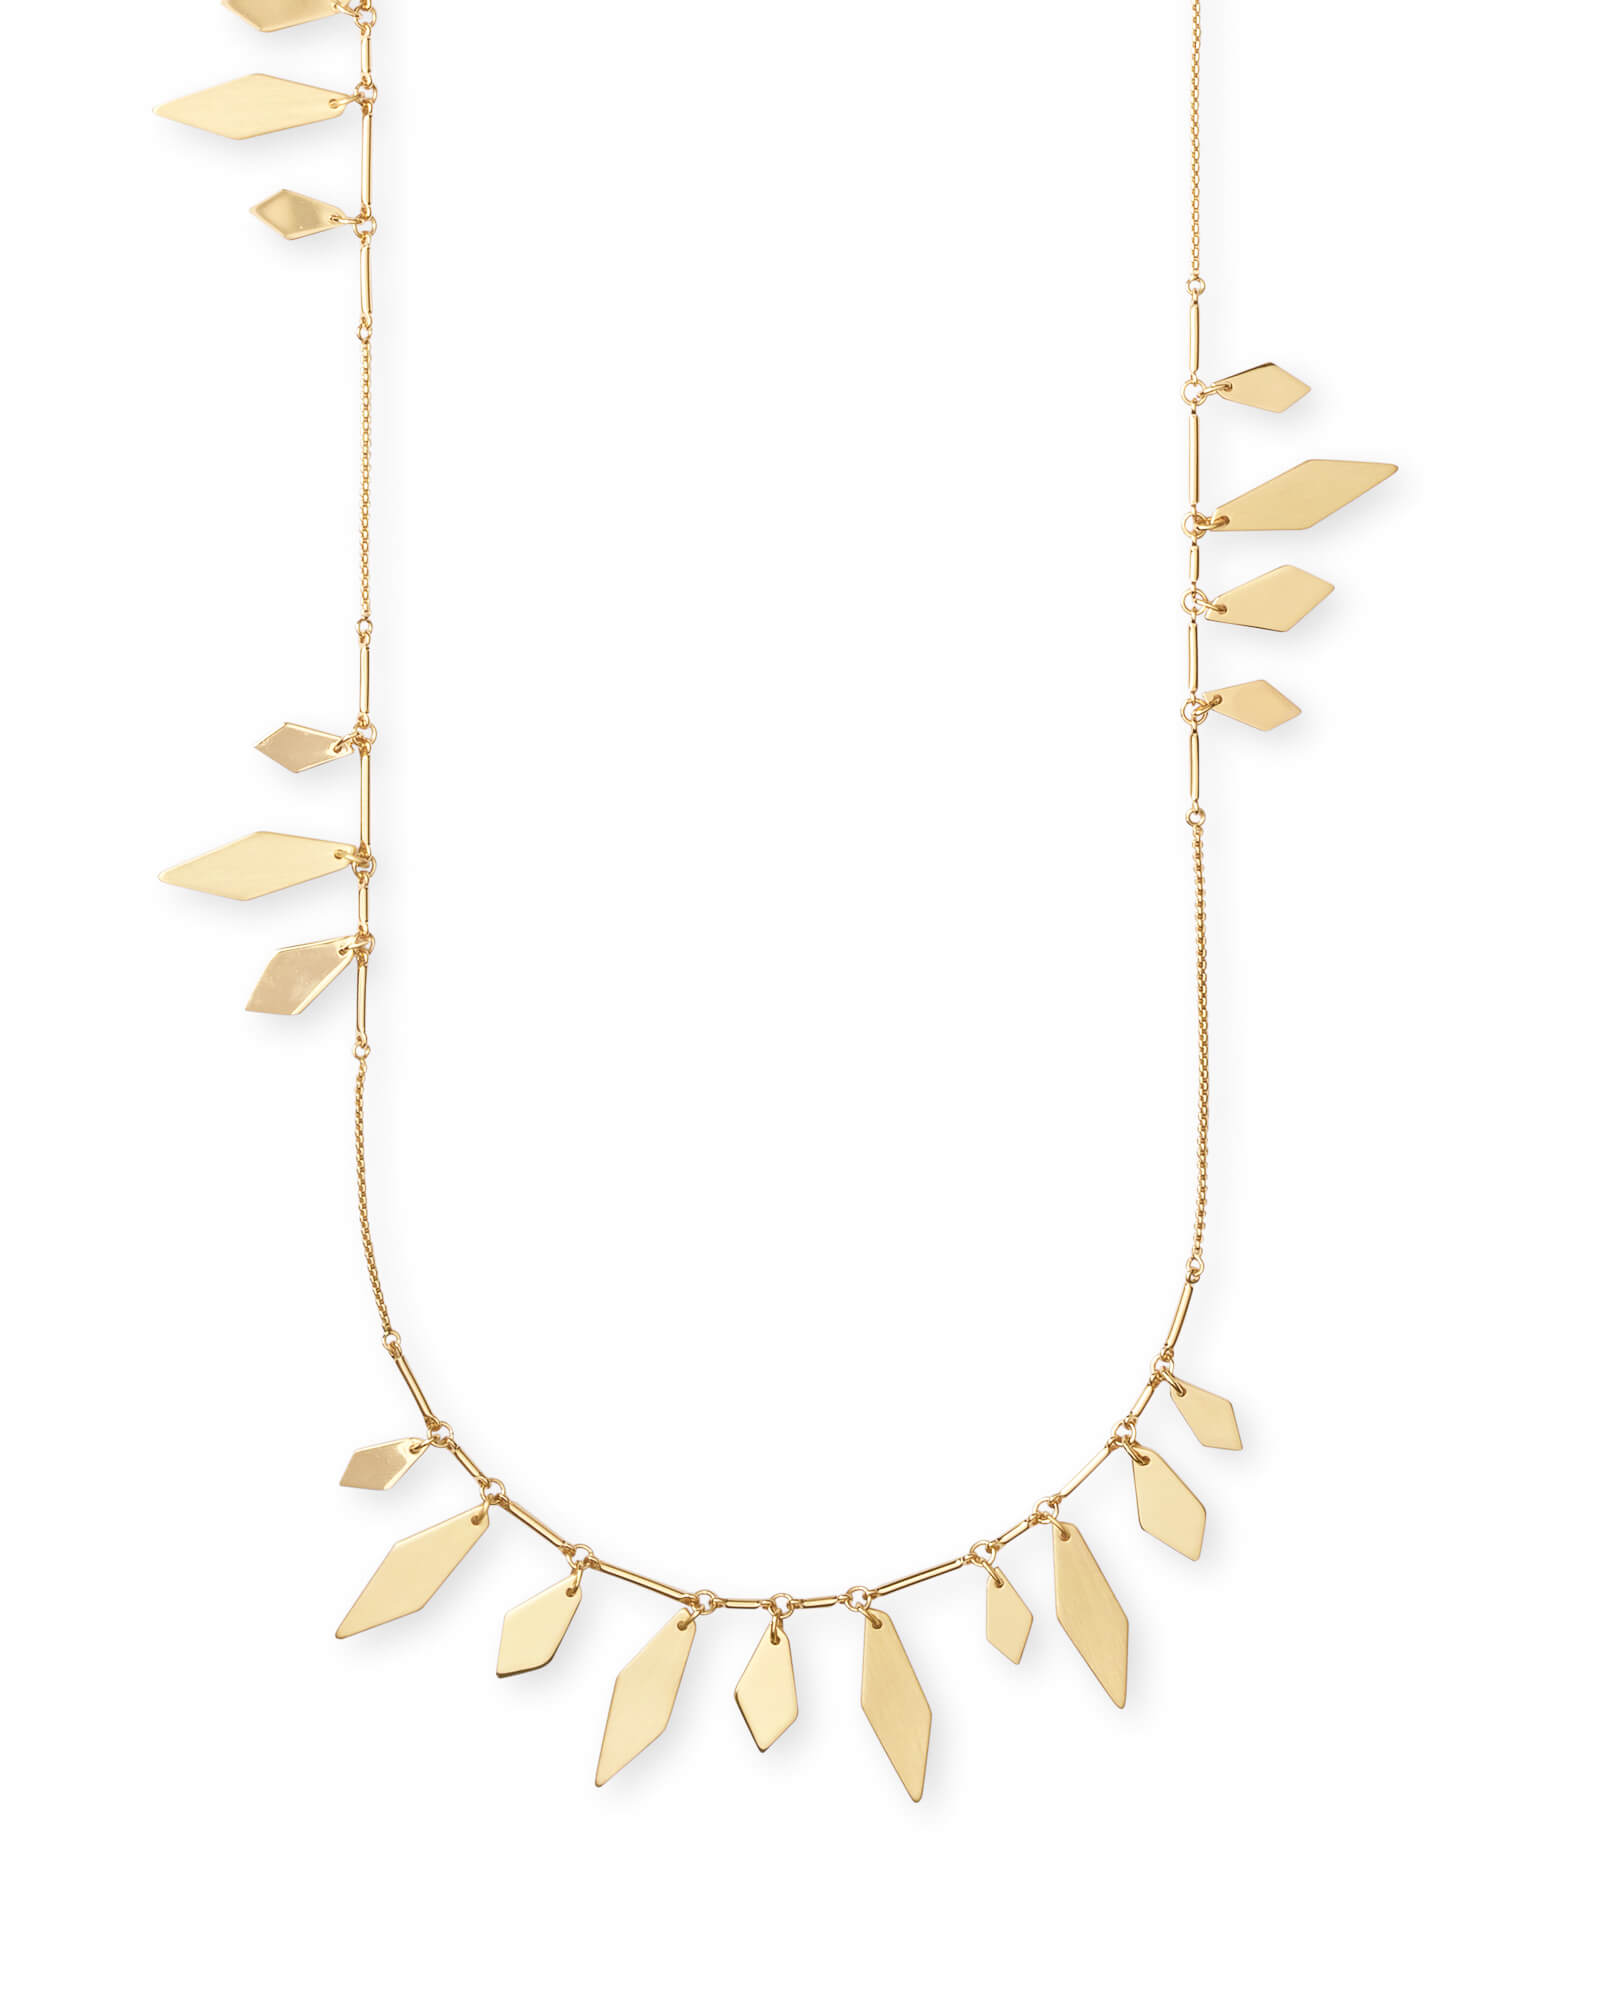 Blaine Long Necklace in Gold